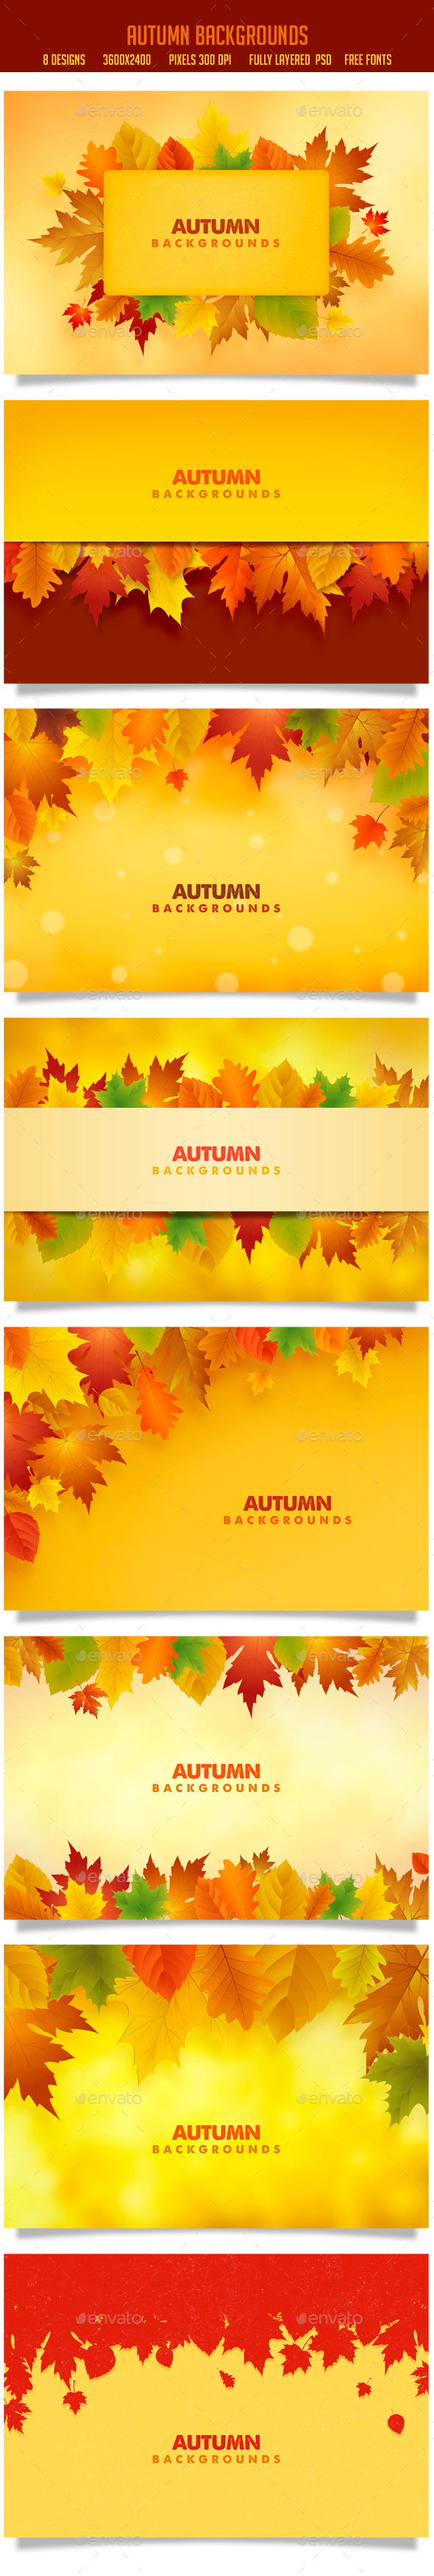 Autumn Backgrounds - Backgrounds Graphics